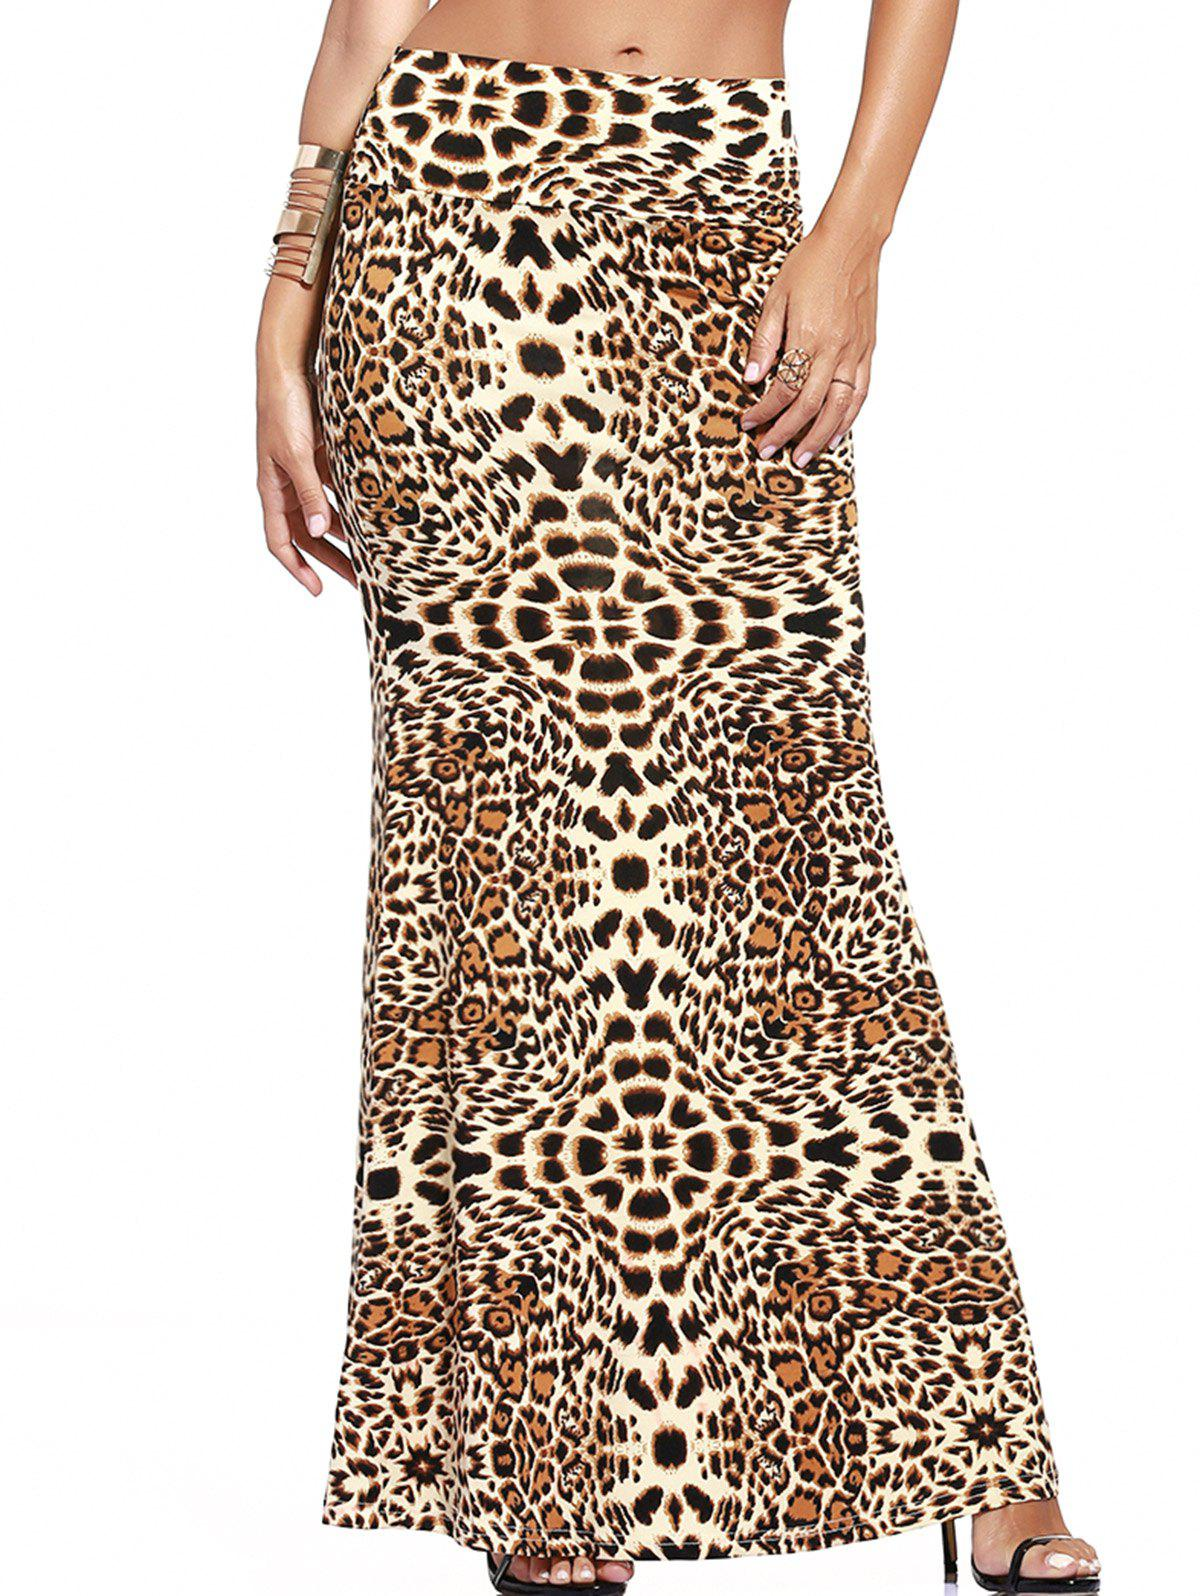 Alluring Leopard Print High-Waist Maxi Skirt For Women - LEOPARD 3XL